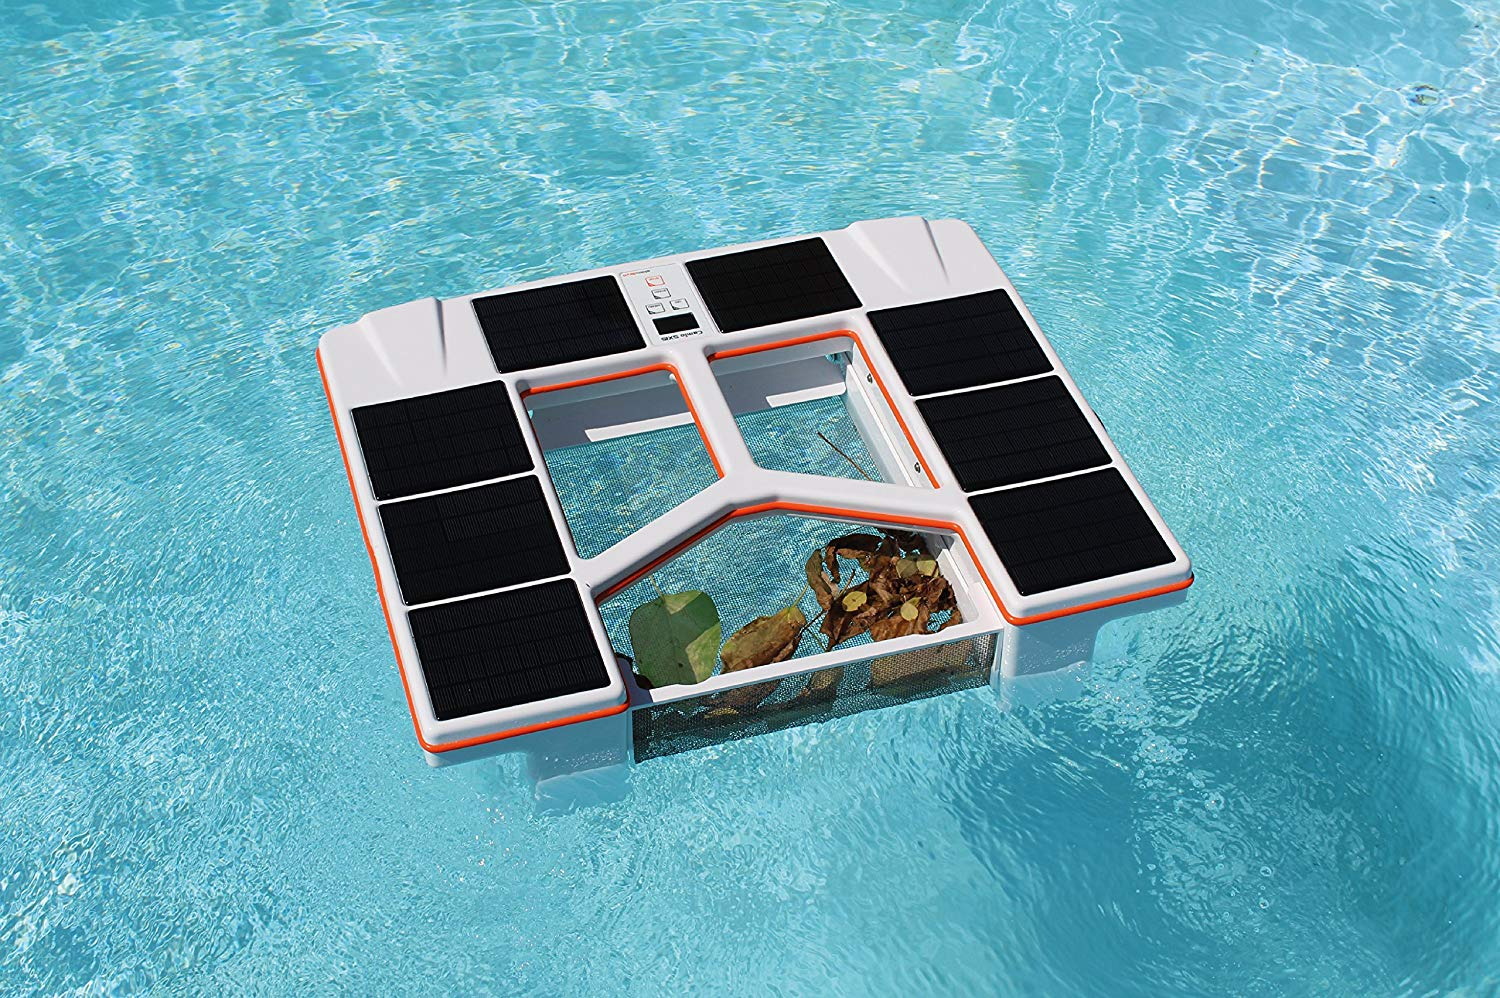 Robotic Pool Surface Cleaner